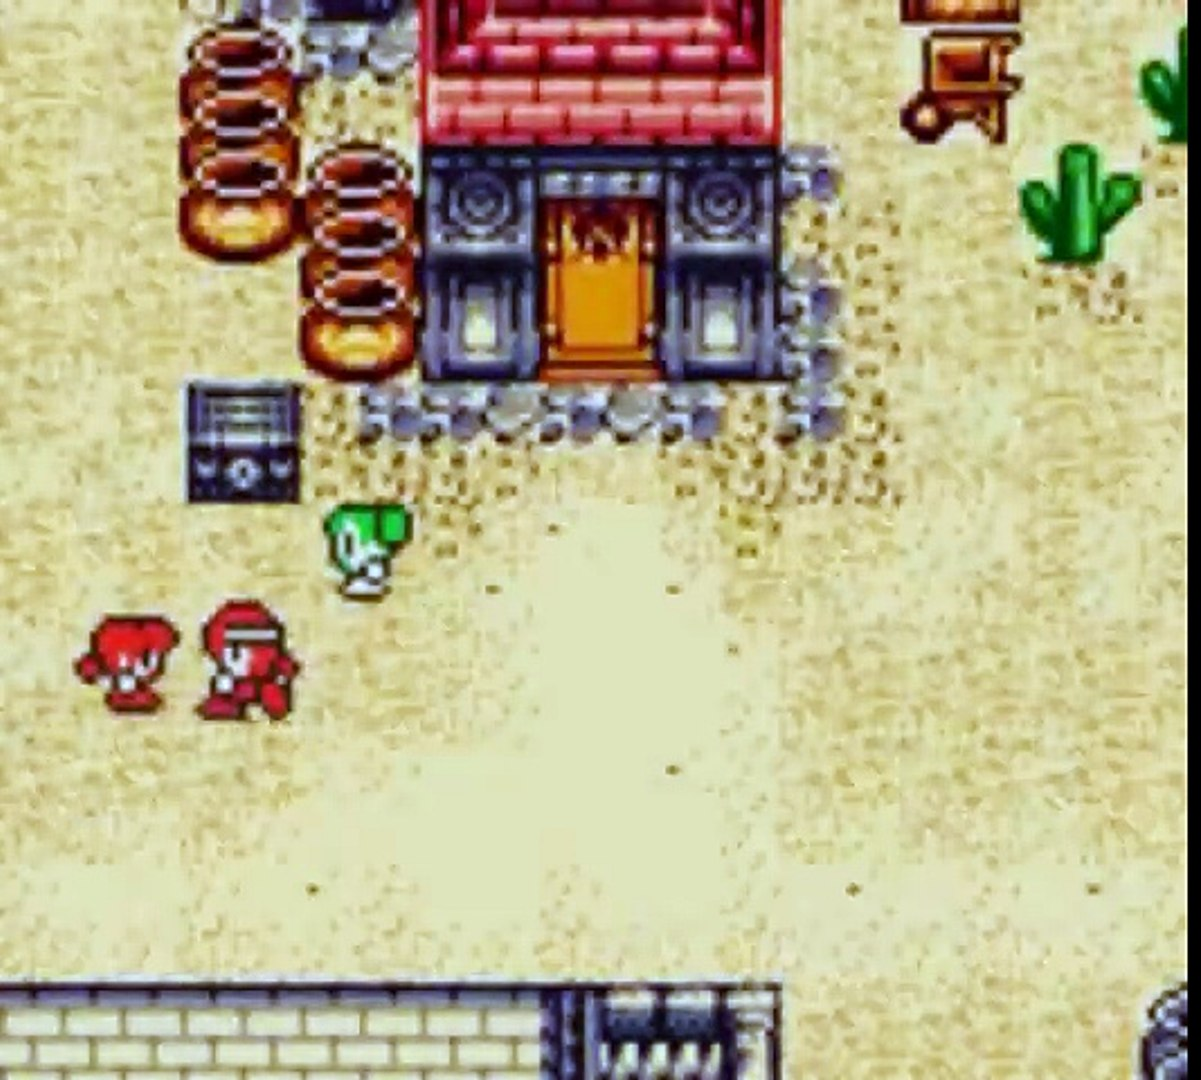 Azure Dreams Gameplay Gbc Video Dailymotion Get azure dreams, rpg game for ps console from the official playstation® website. azure dreams gameplay gbc